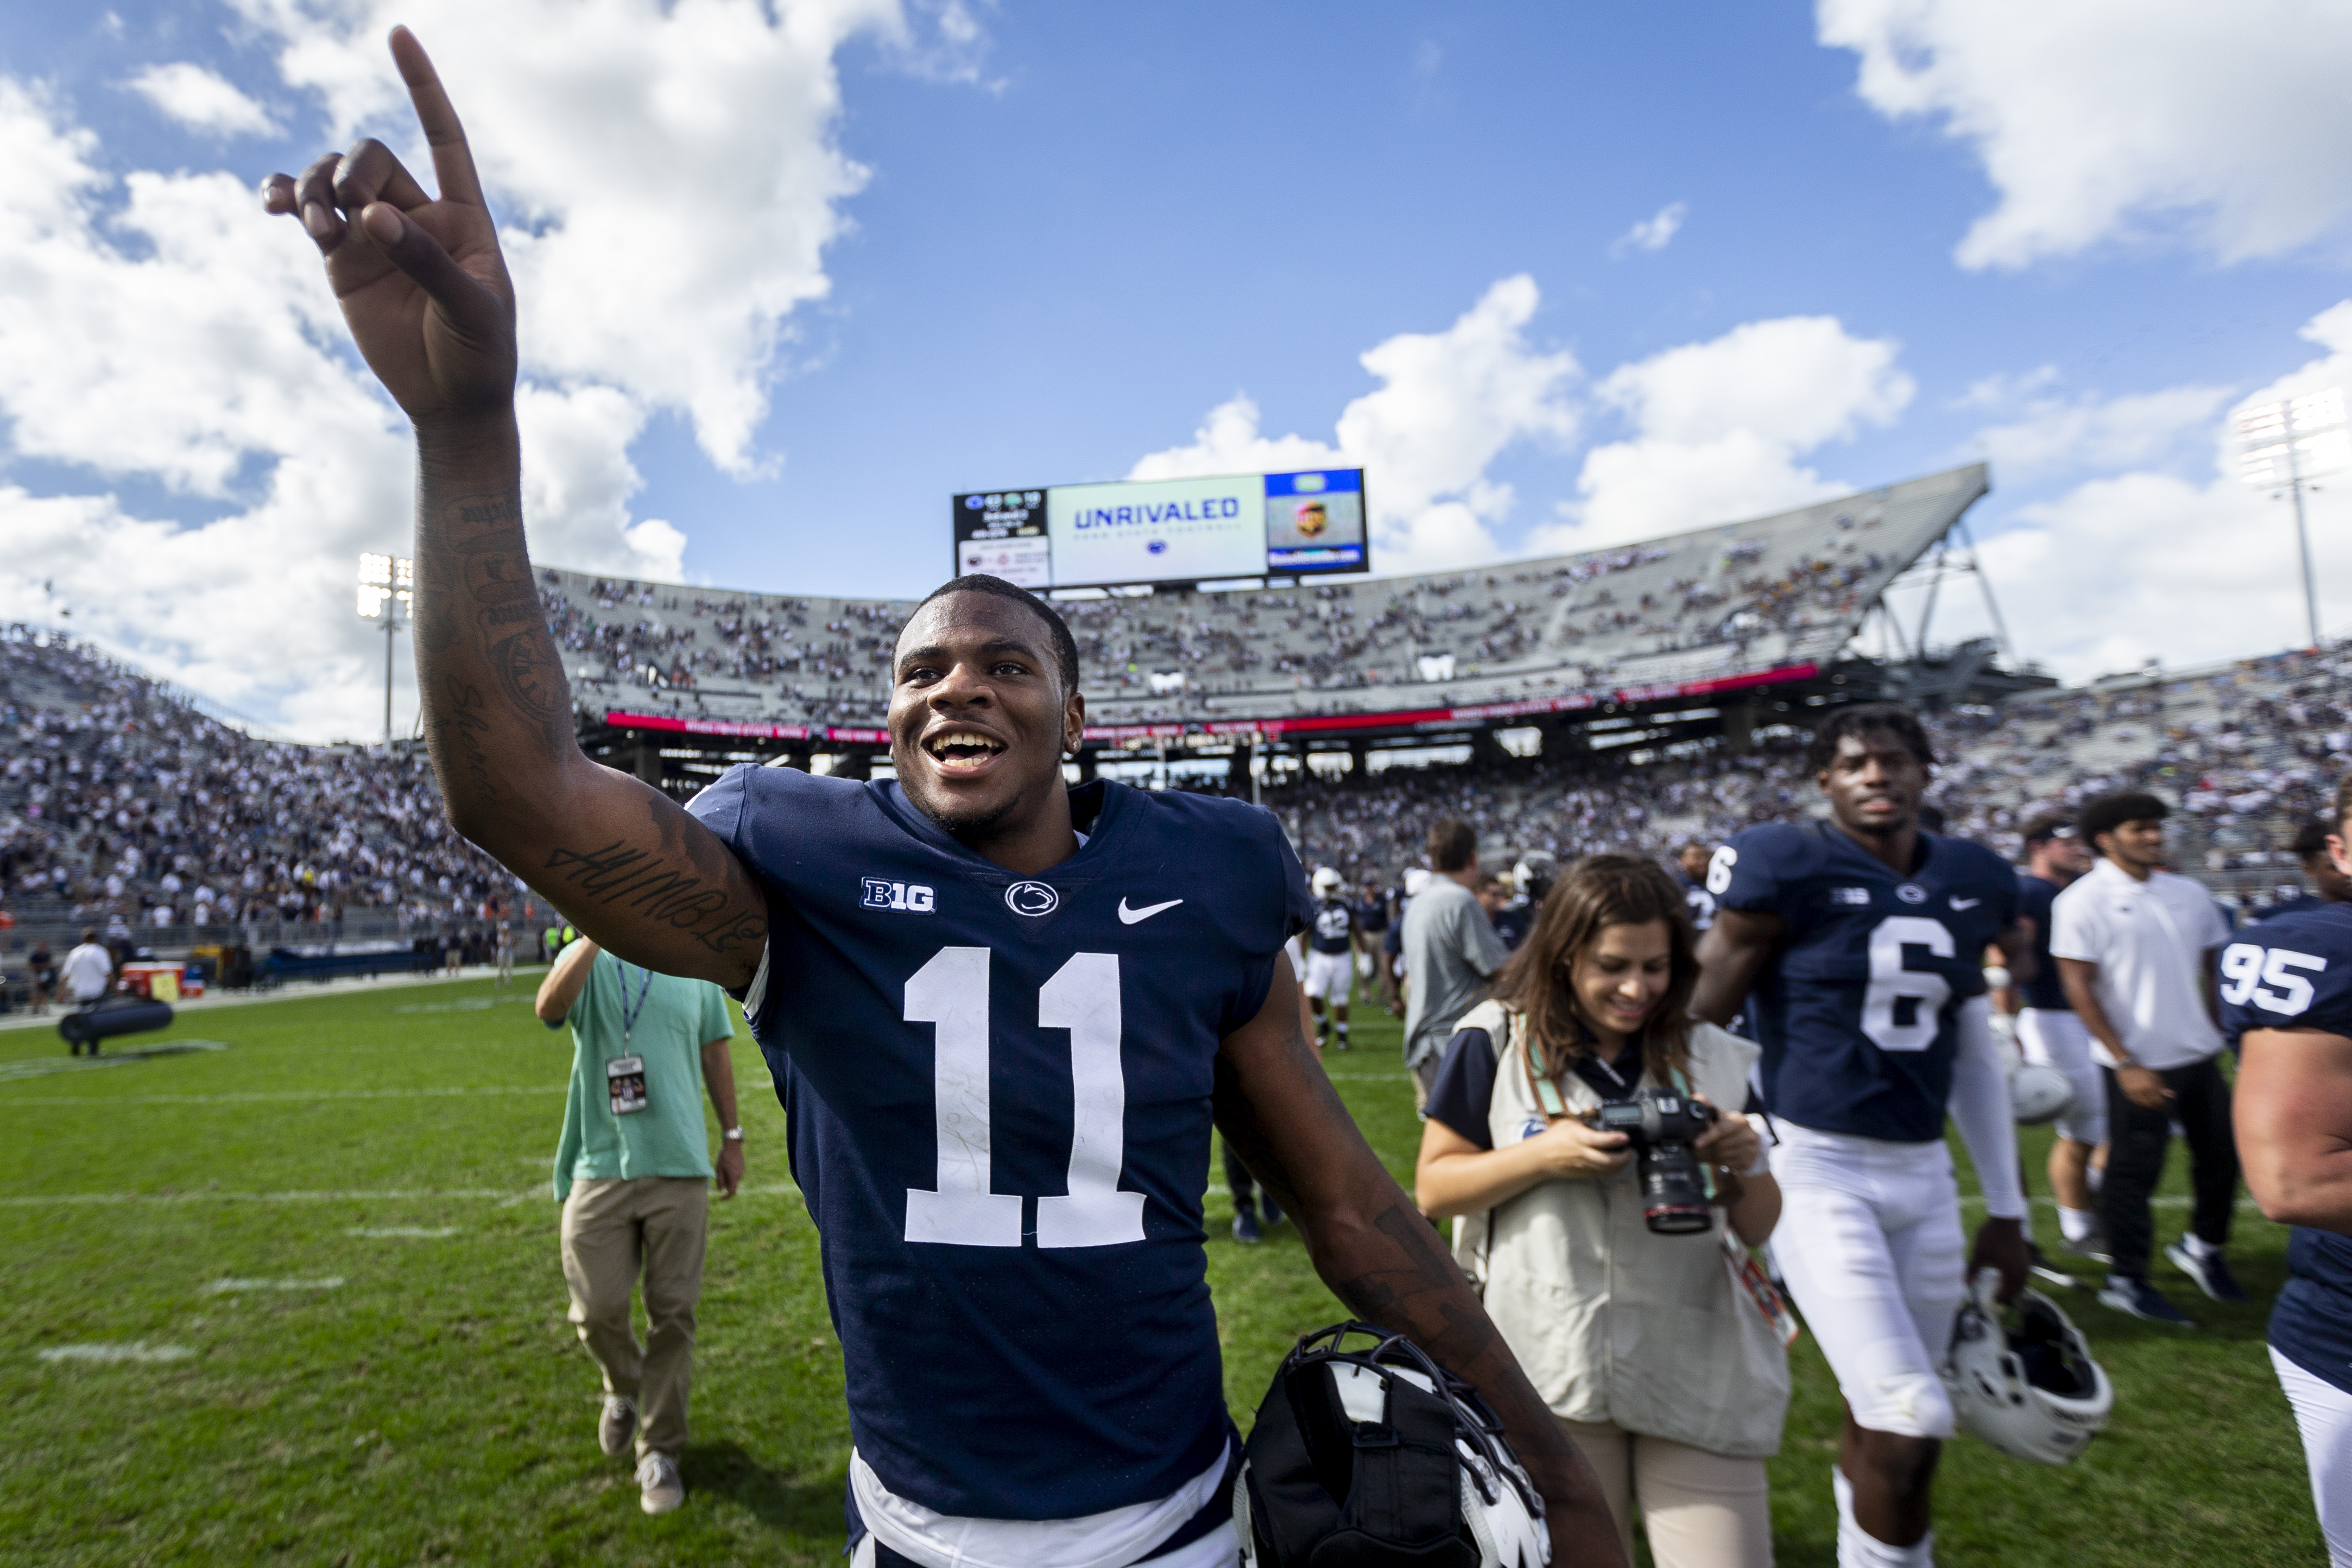 Could new FOX TV schedule mean more Noon games for Penn State this fall?